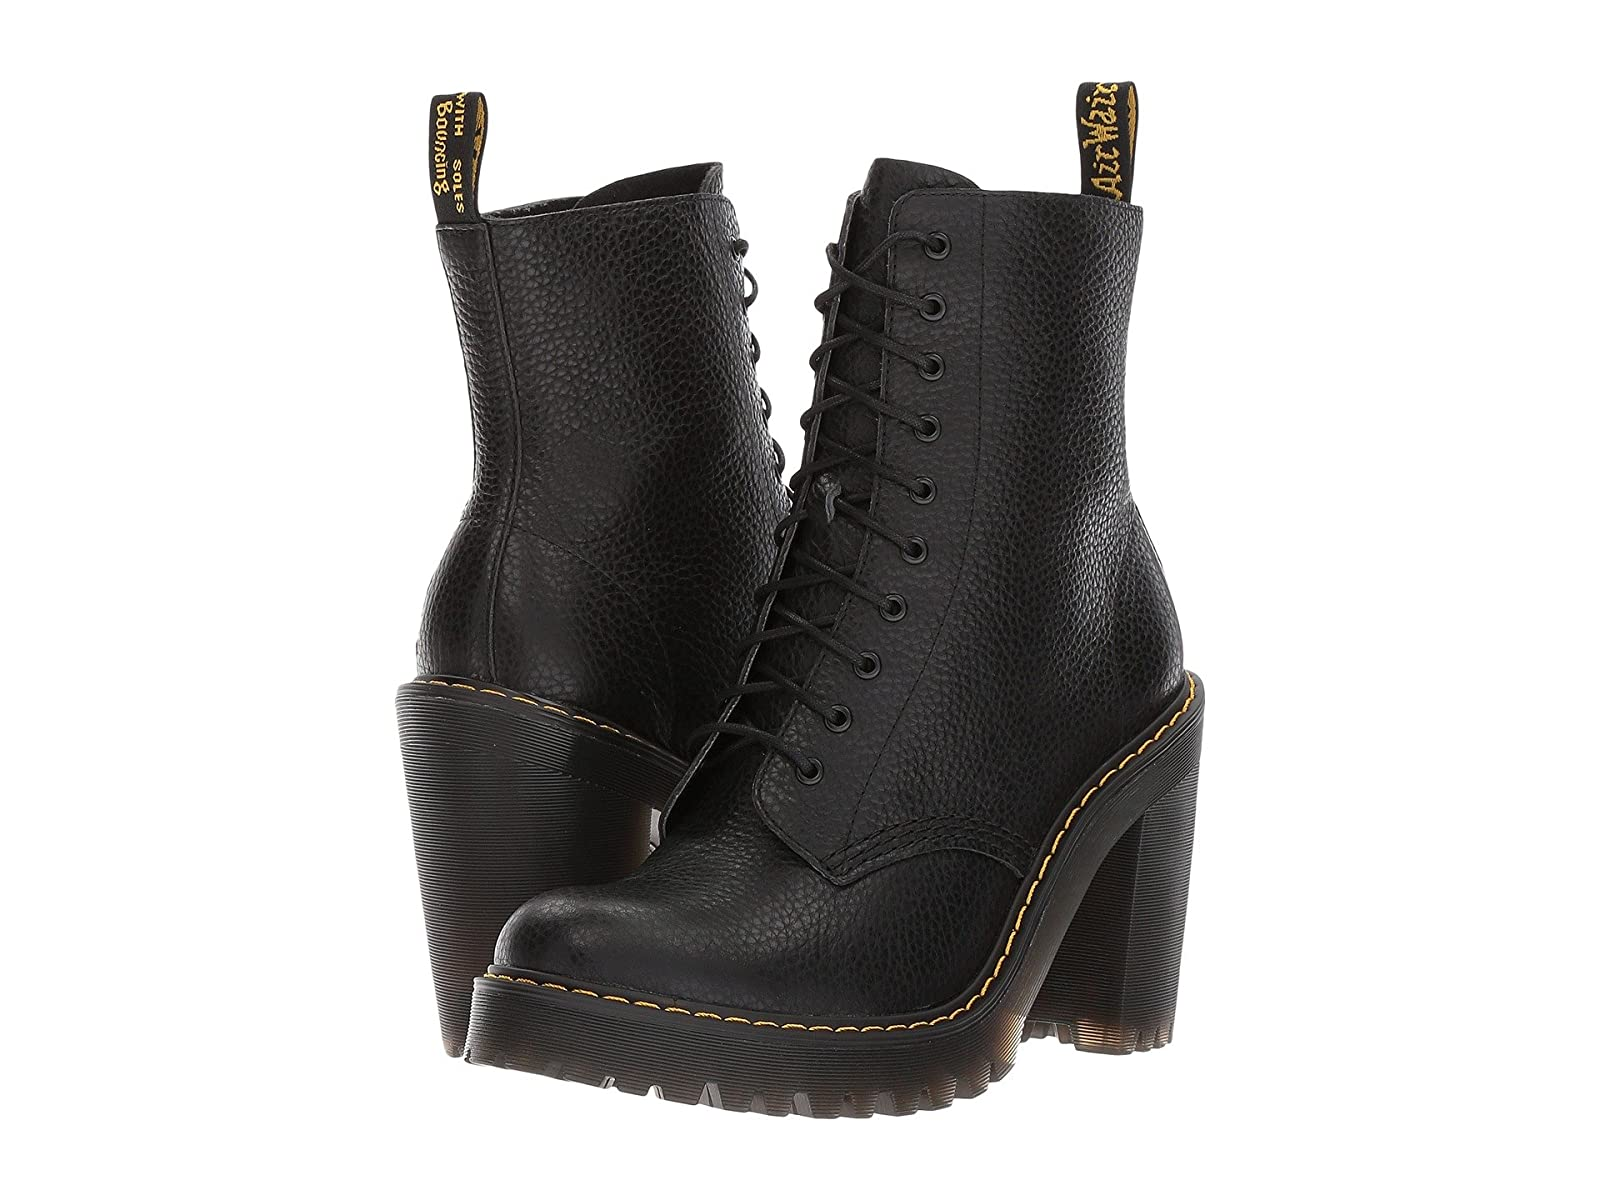 Dr. Martens Kendra 10-Eye BootAffordable and distinctive shoes